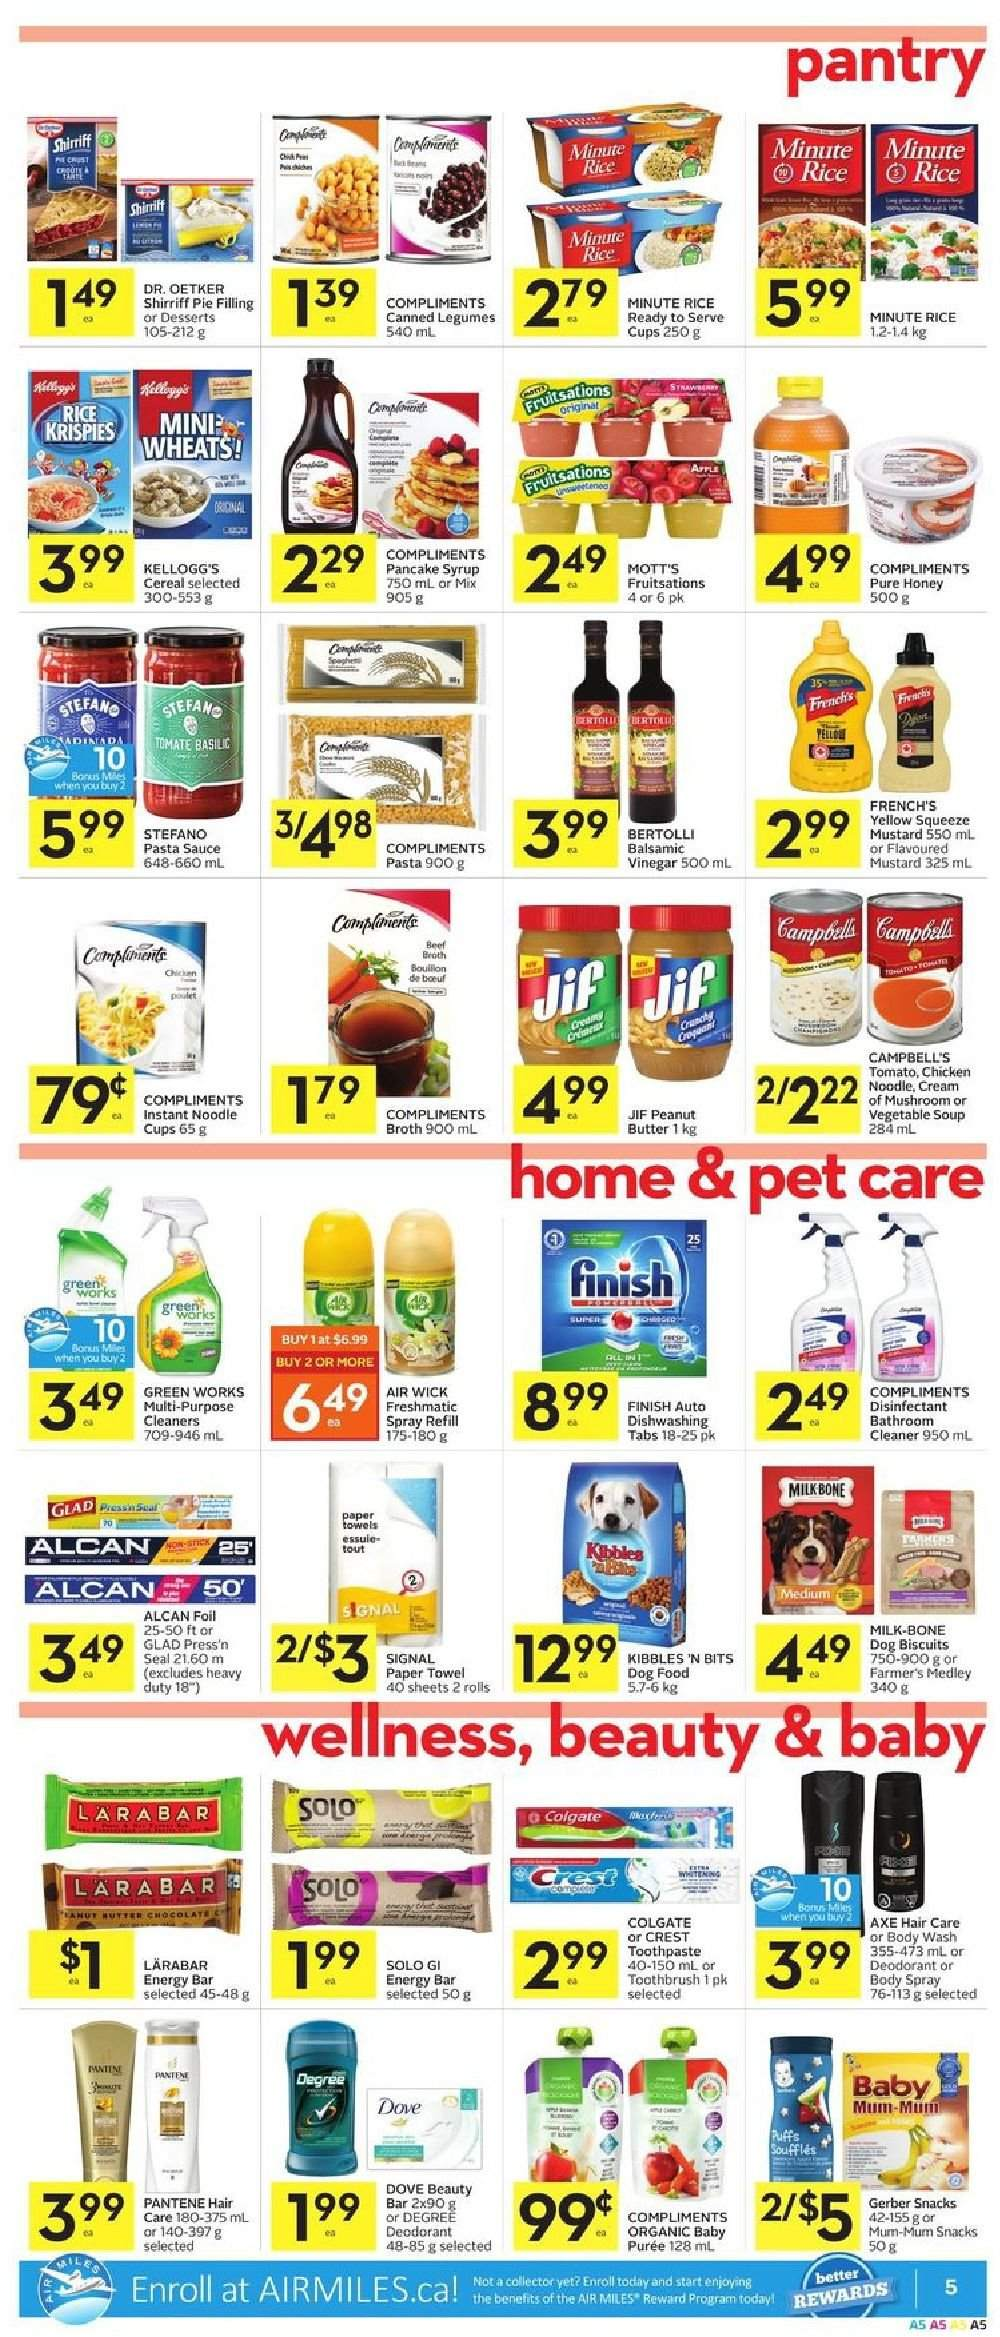 Foodland Flyer  - February 21, 2019 - February 27, 2019. Page 5.